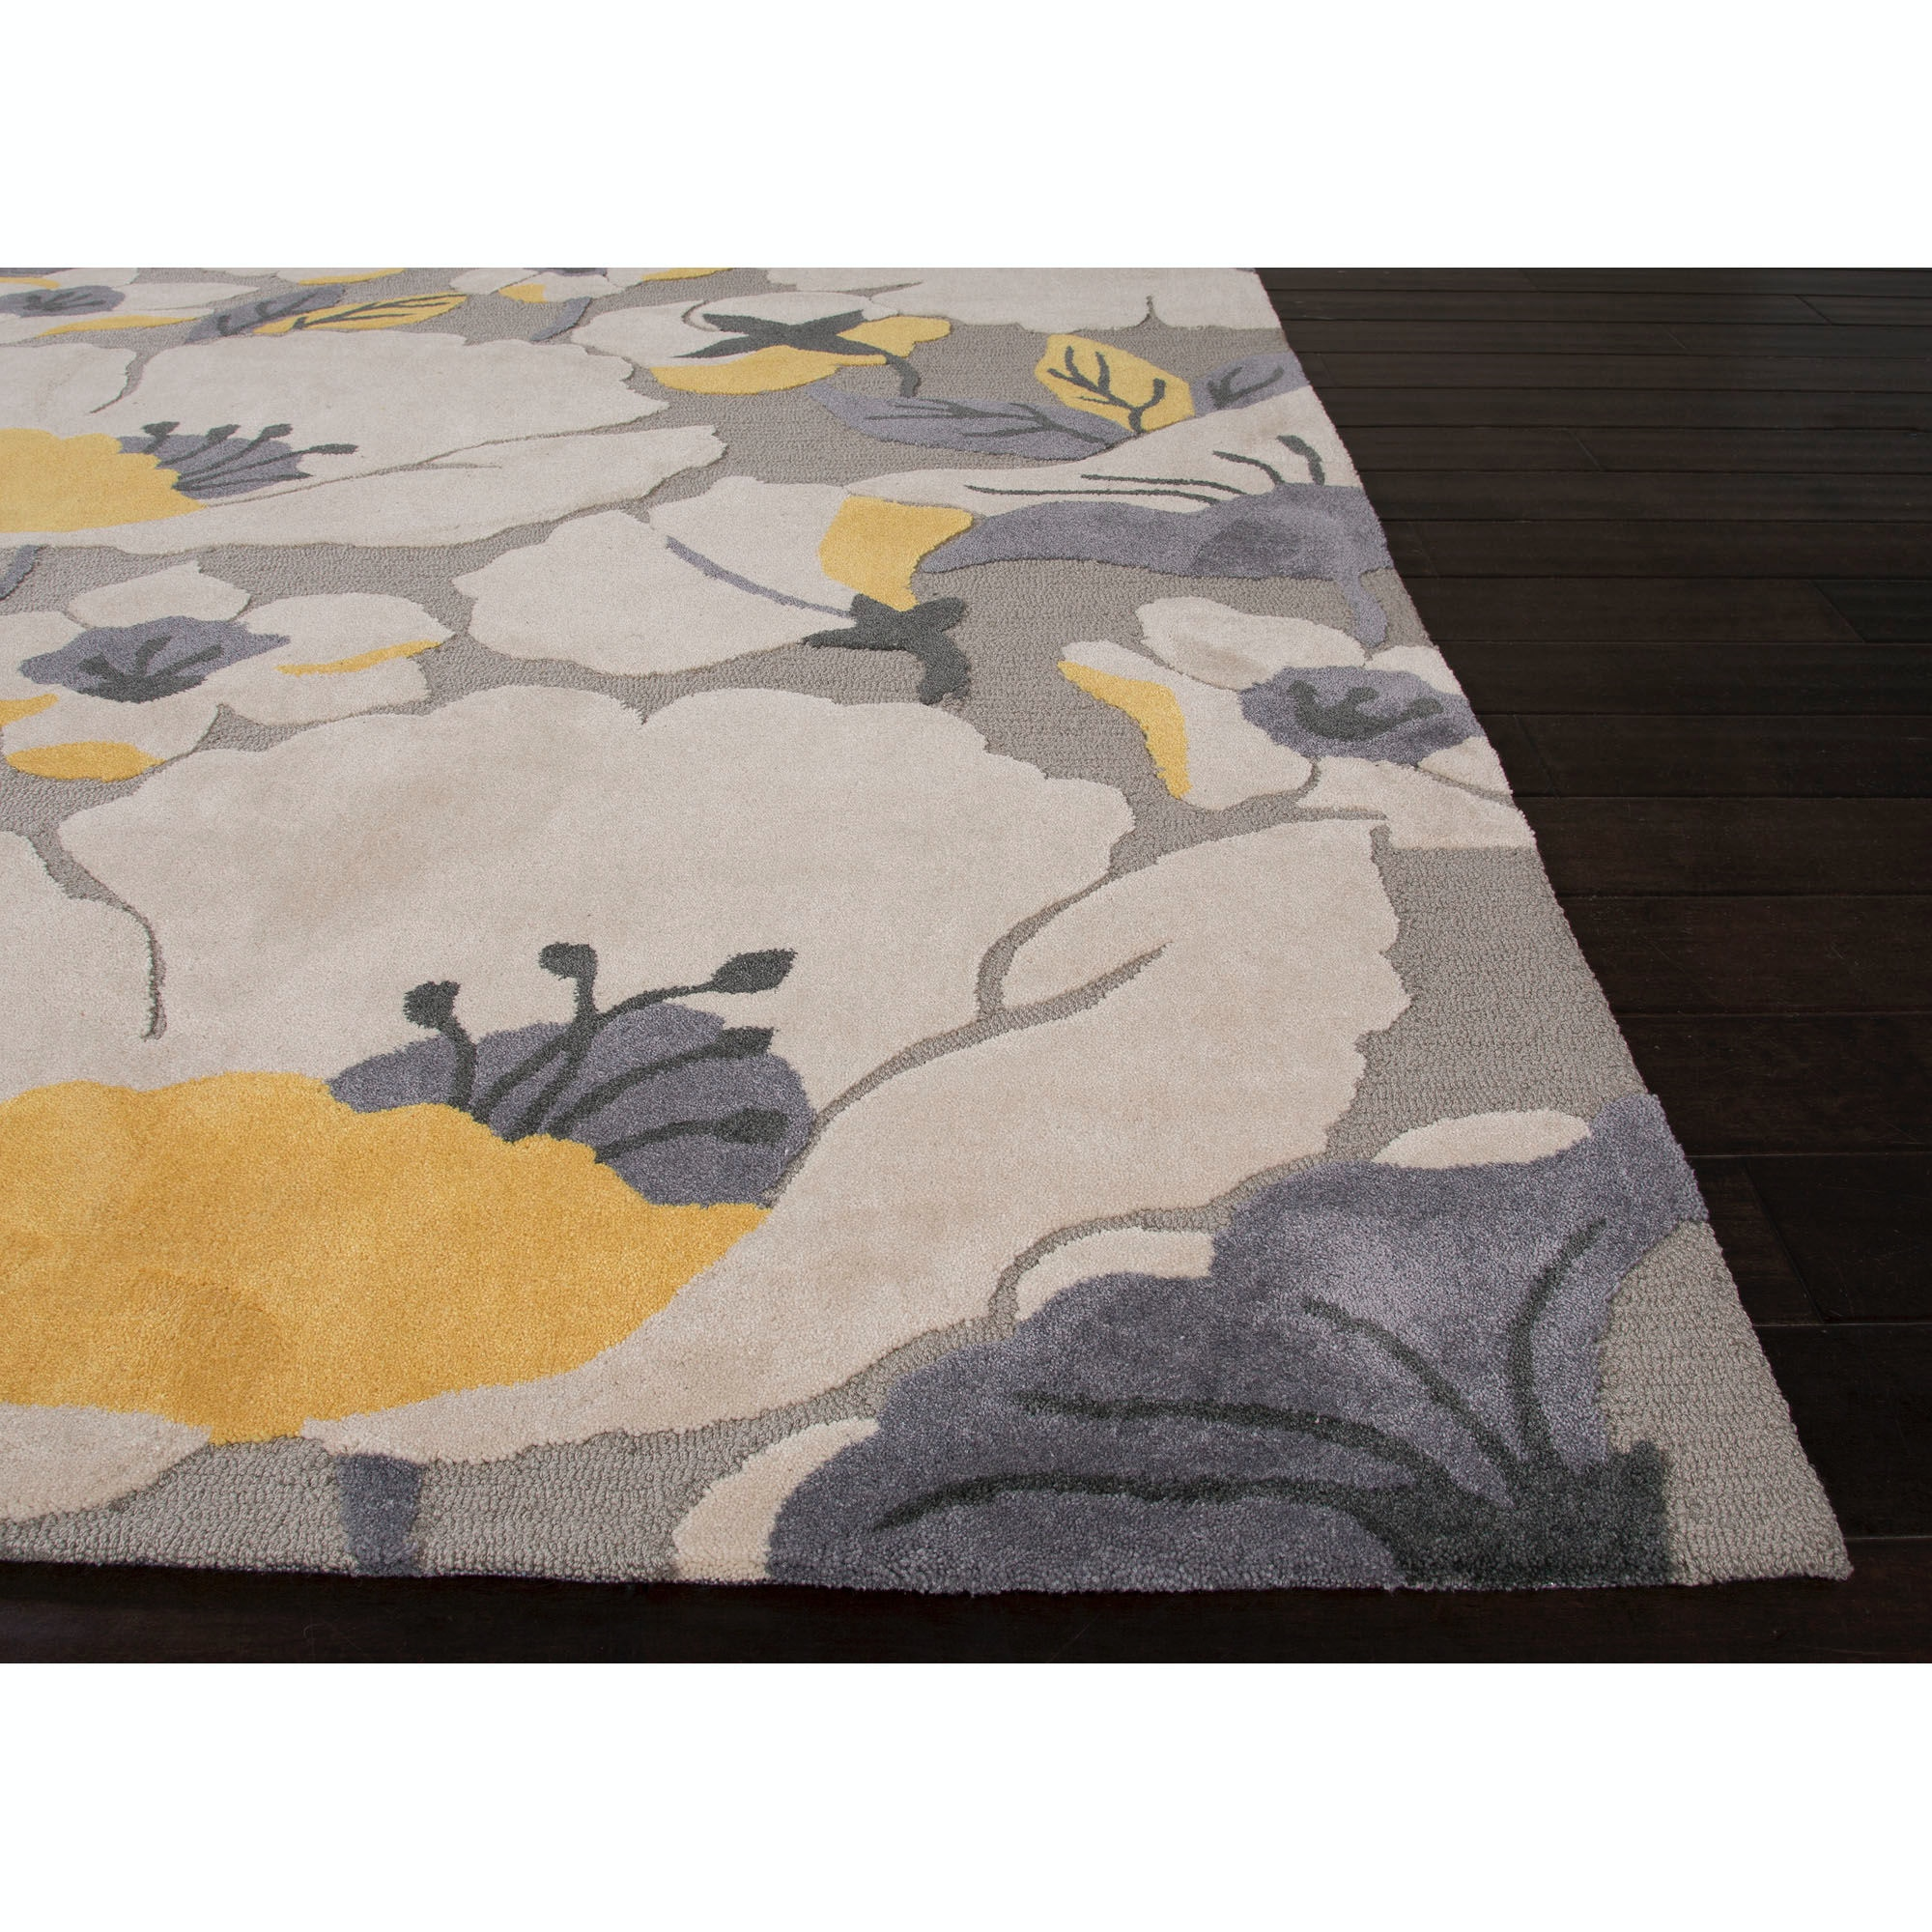 Jaipur Rugs Floor Coverings Jaipur Hand Tufted Floral Pattern Gray Yellows Gold Polyester 5x7 6